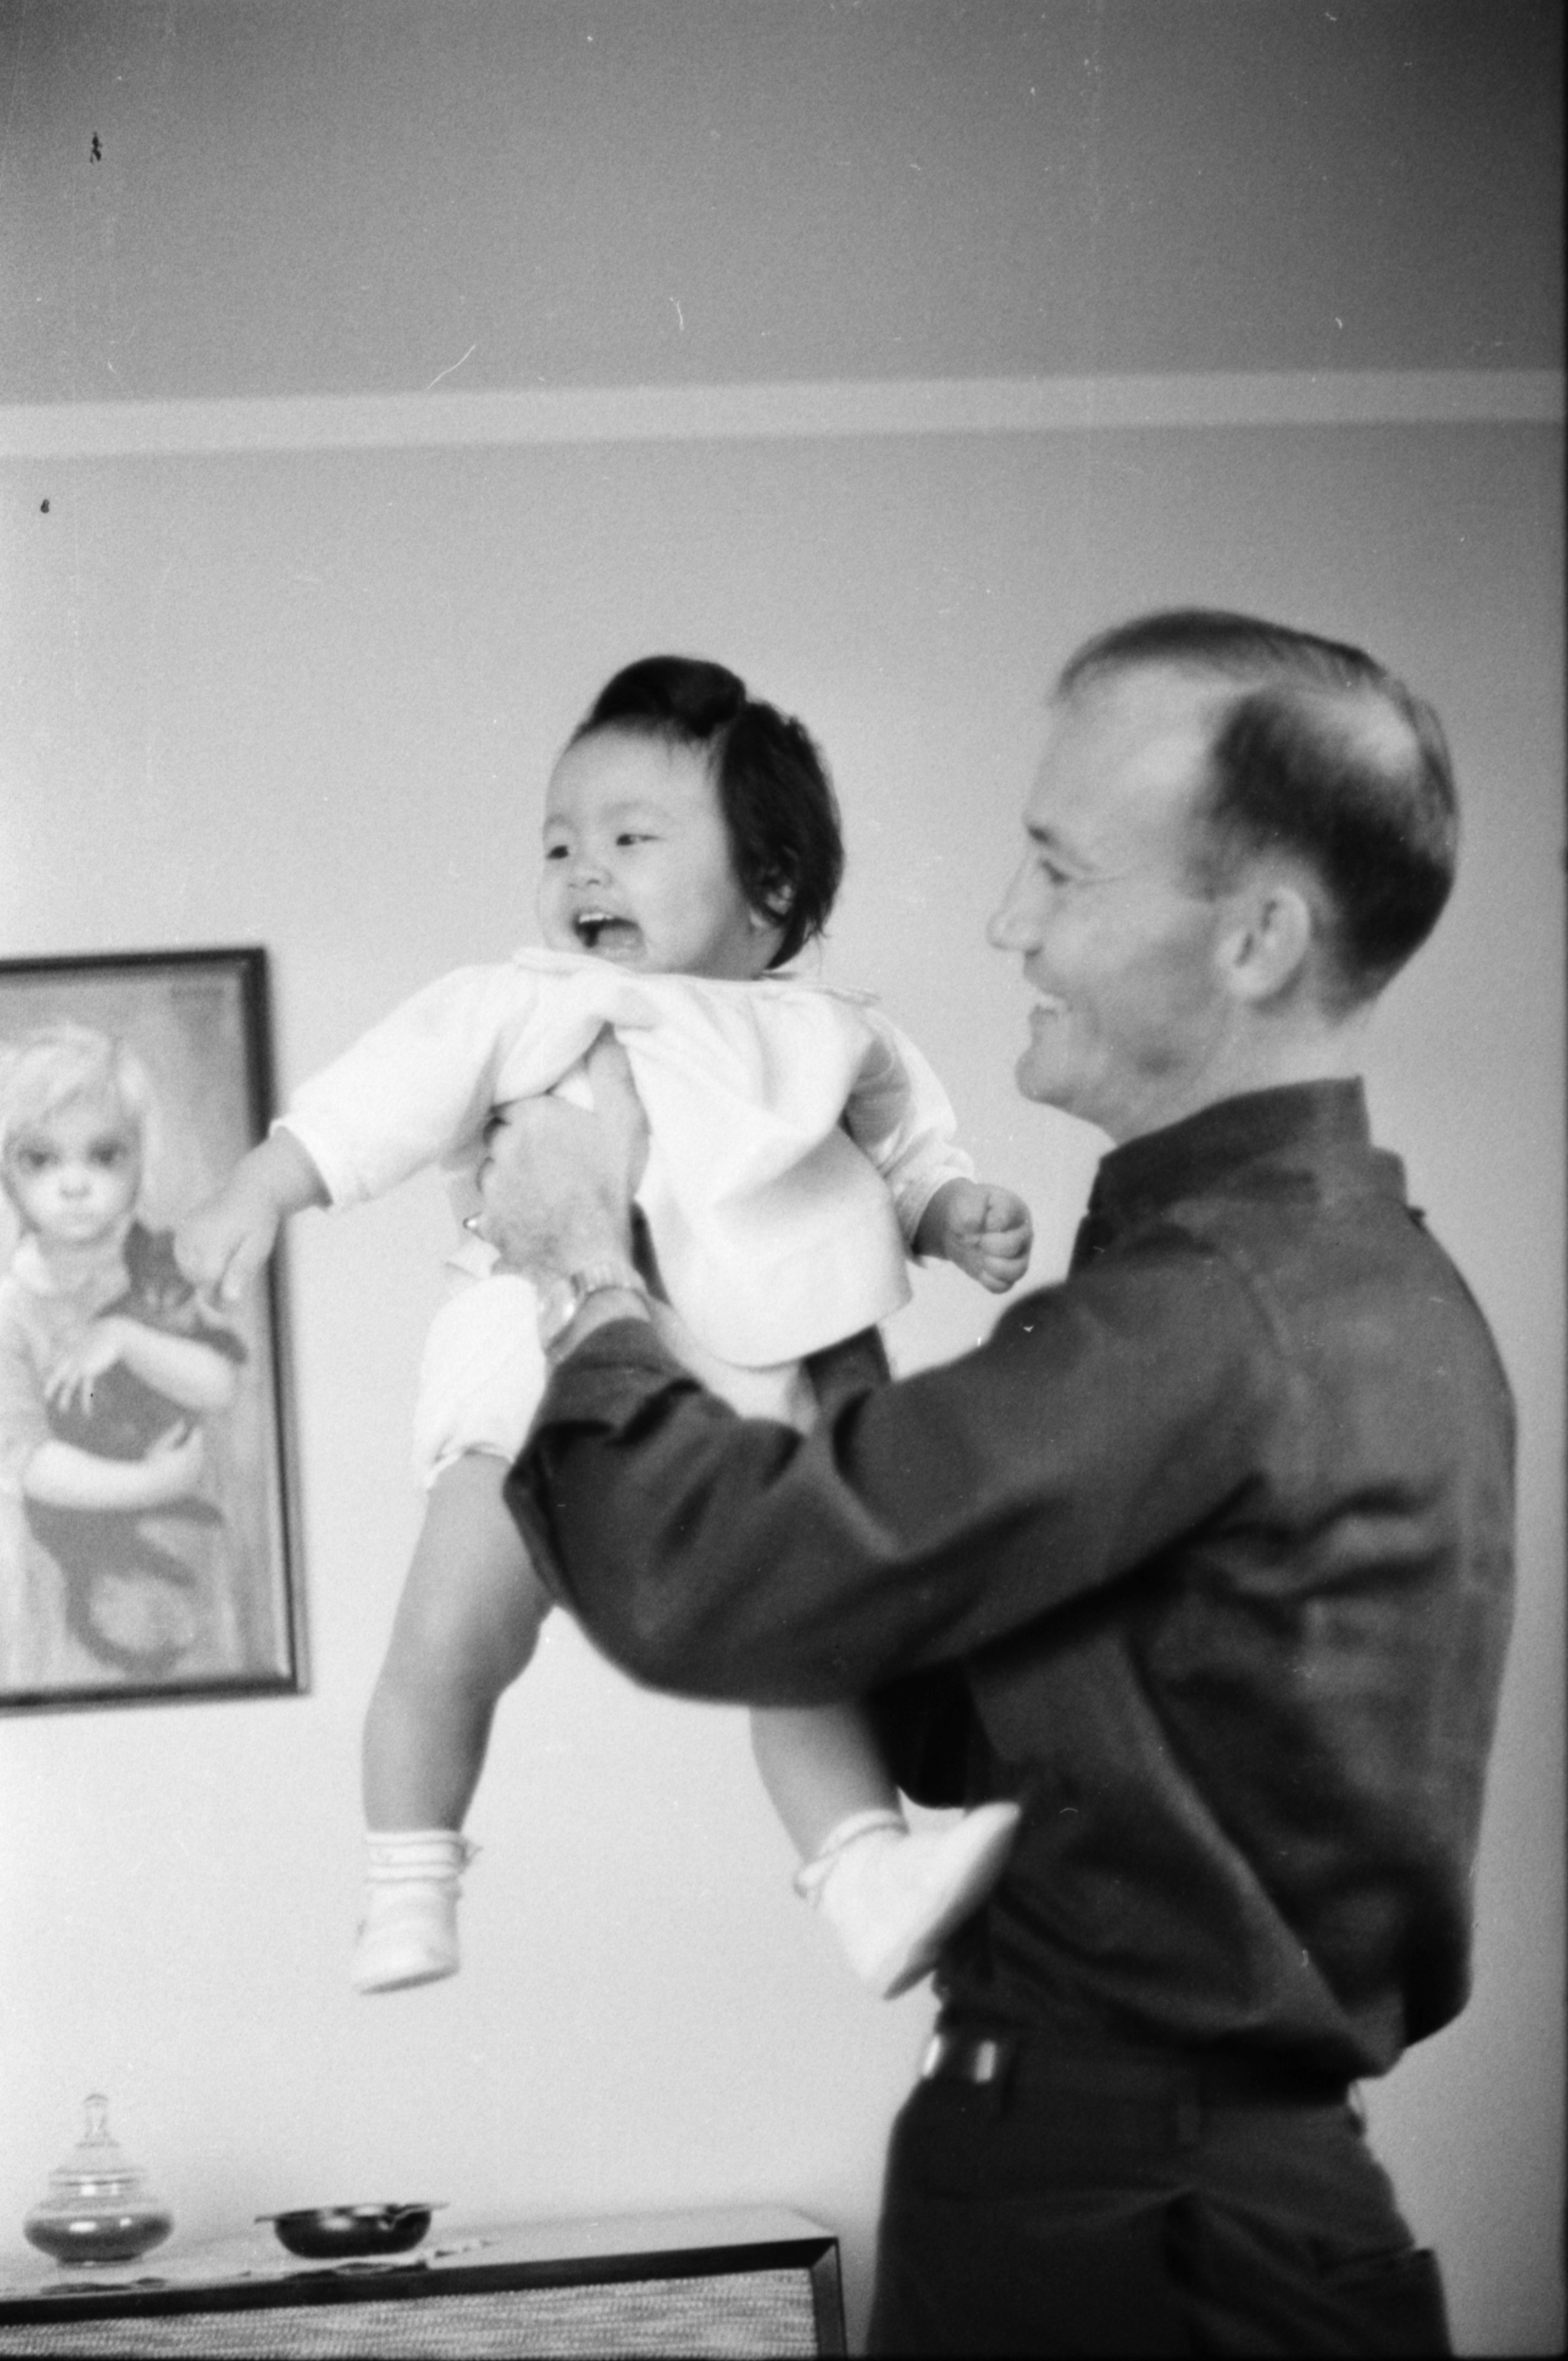 Mr. & Mrs. William C. Kendall and Baby Adopted From Vietnam image